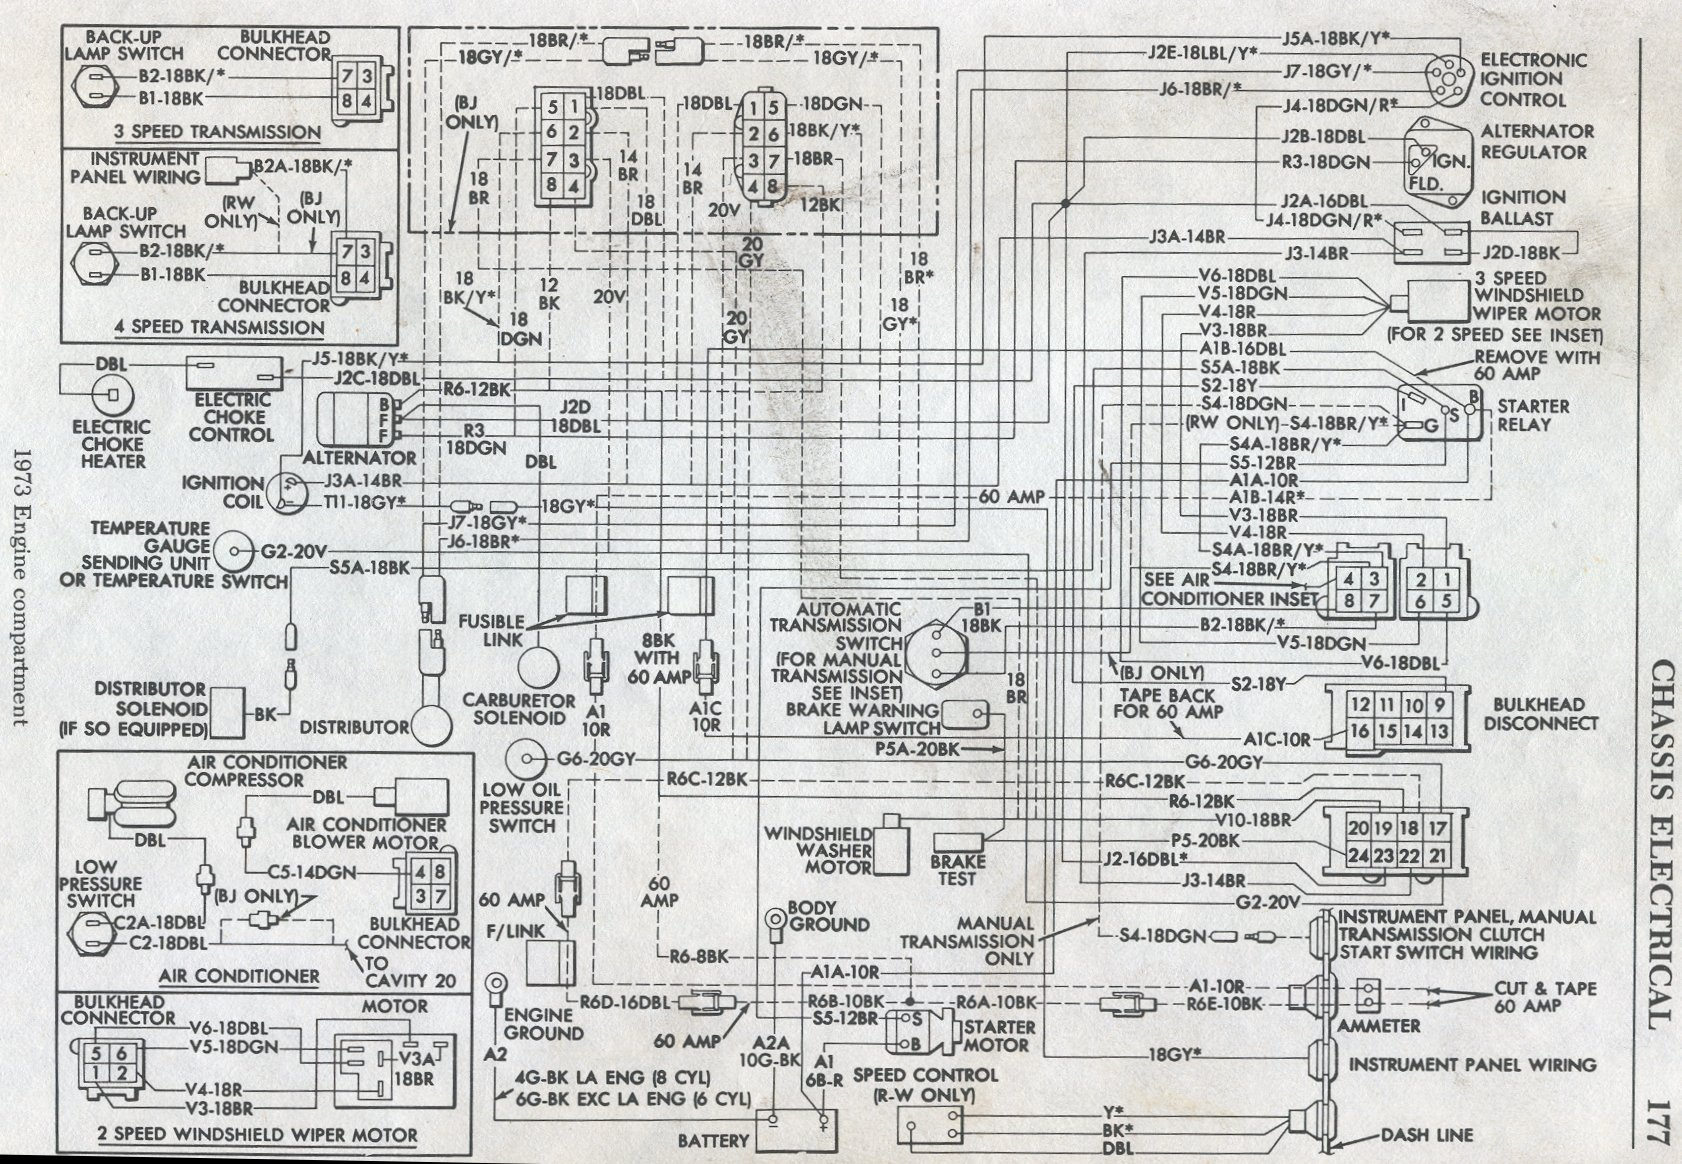 chrysler alternator wiring diagram 1974 with 1970 Plymouth Duster Ignition Wiring Diagram on Mopp 1110 Ballast Resistor Guide Ballast Blast Off besides TR4q 7163 likewise 1971 Plymouth Sc  Wiring Diagram further LE1r 5127 in addition 3 Wire Ignition Switch Diagram.